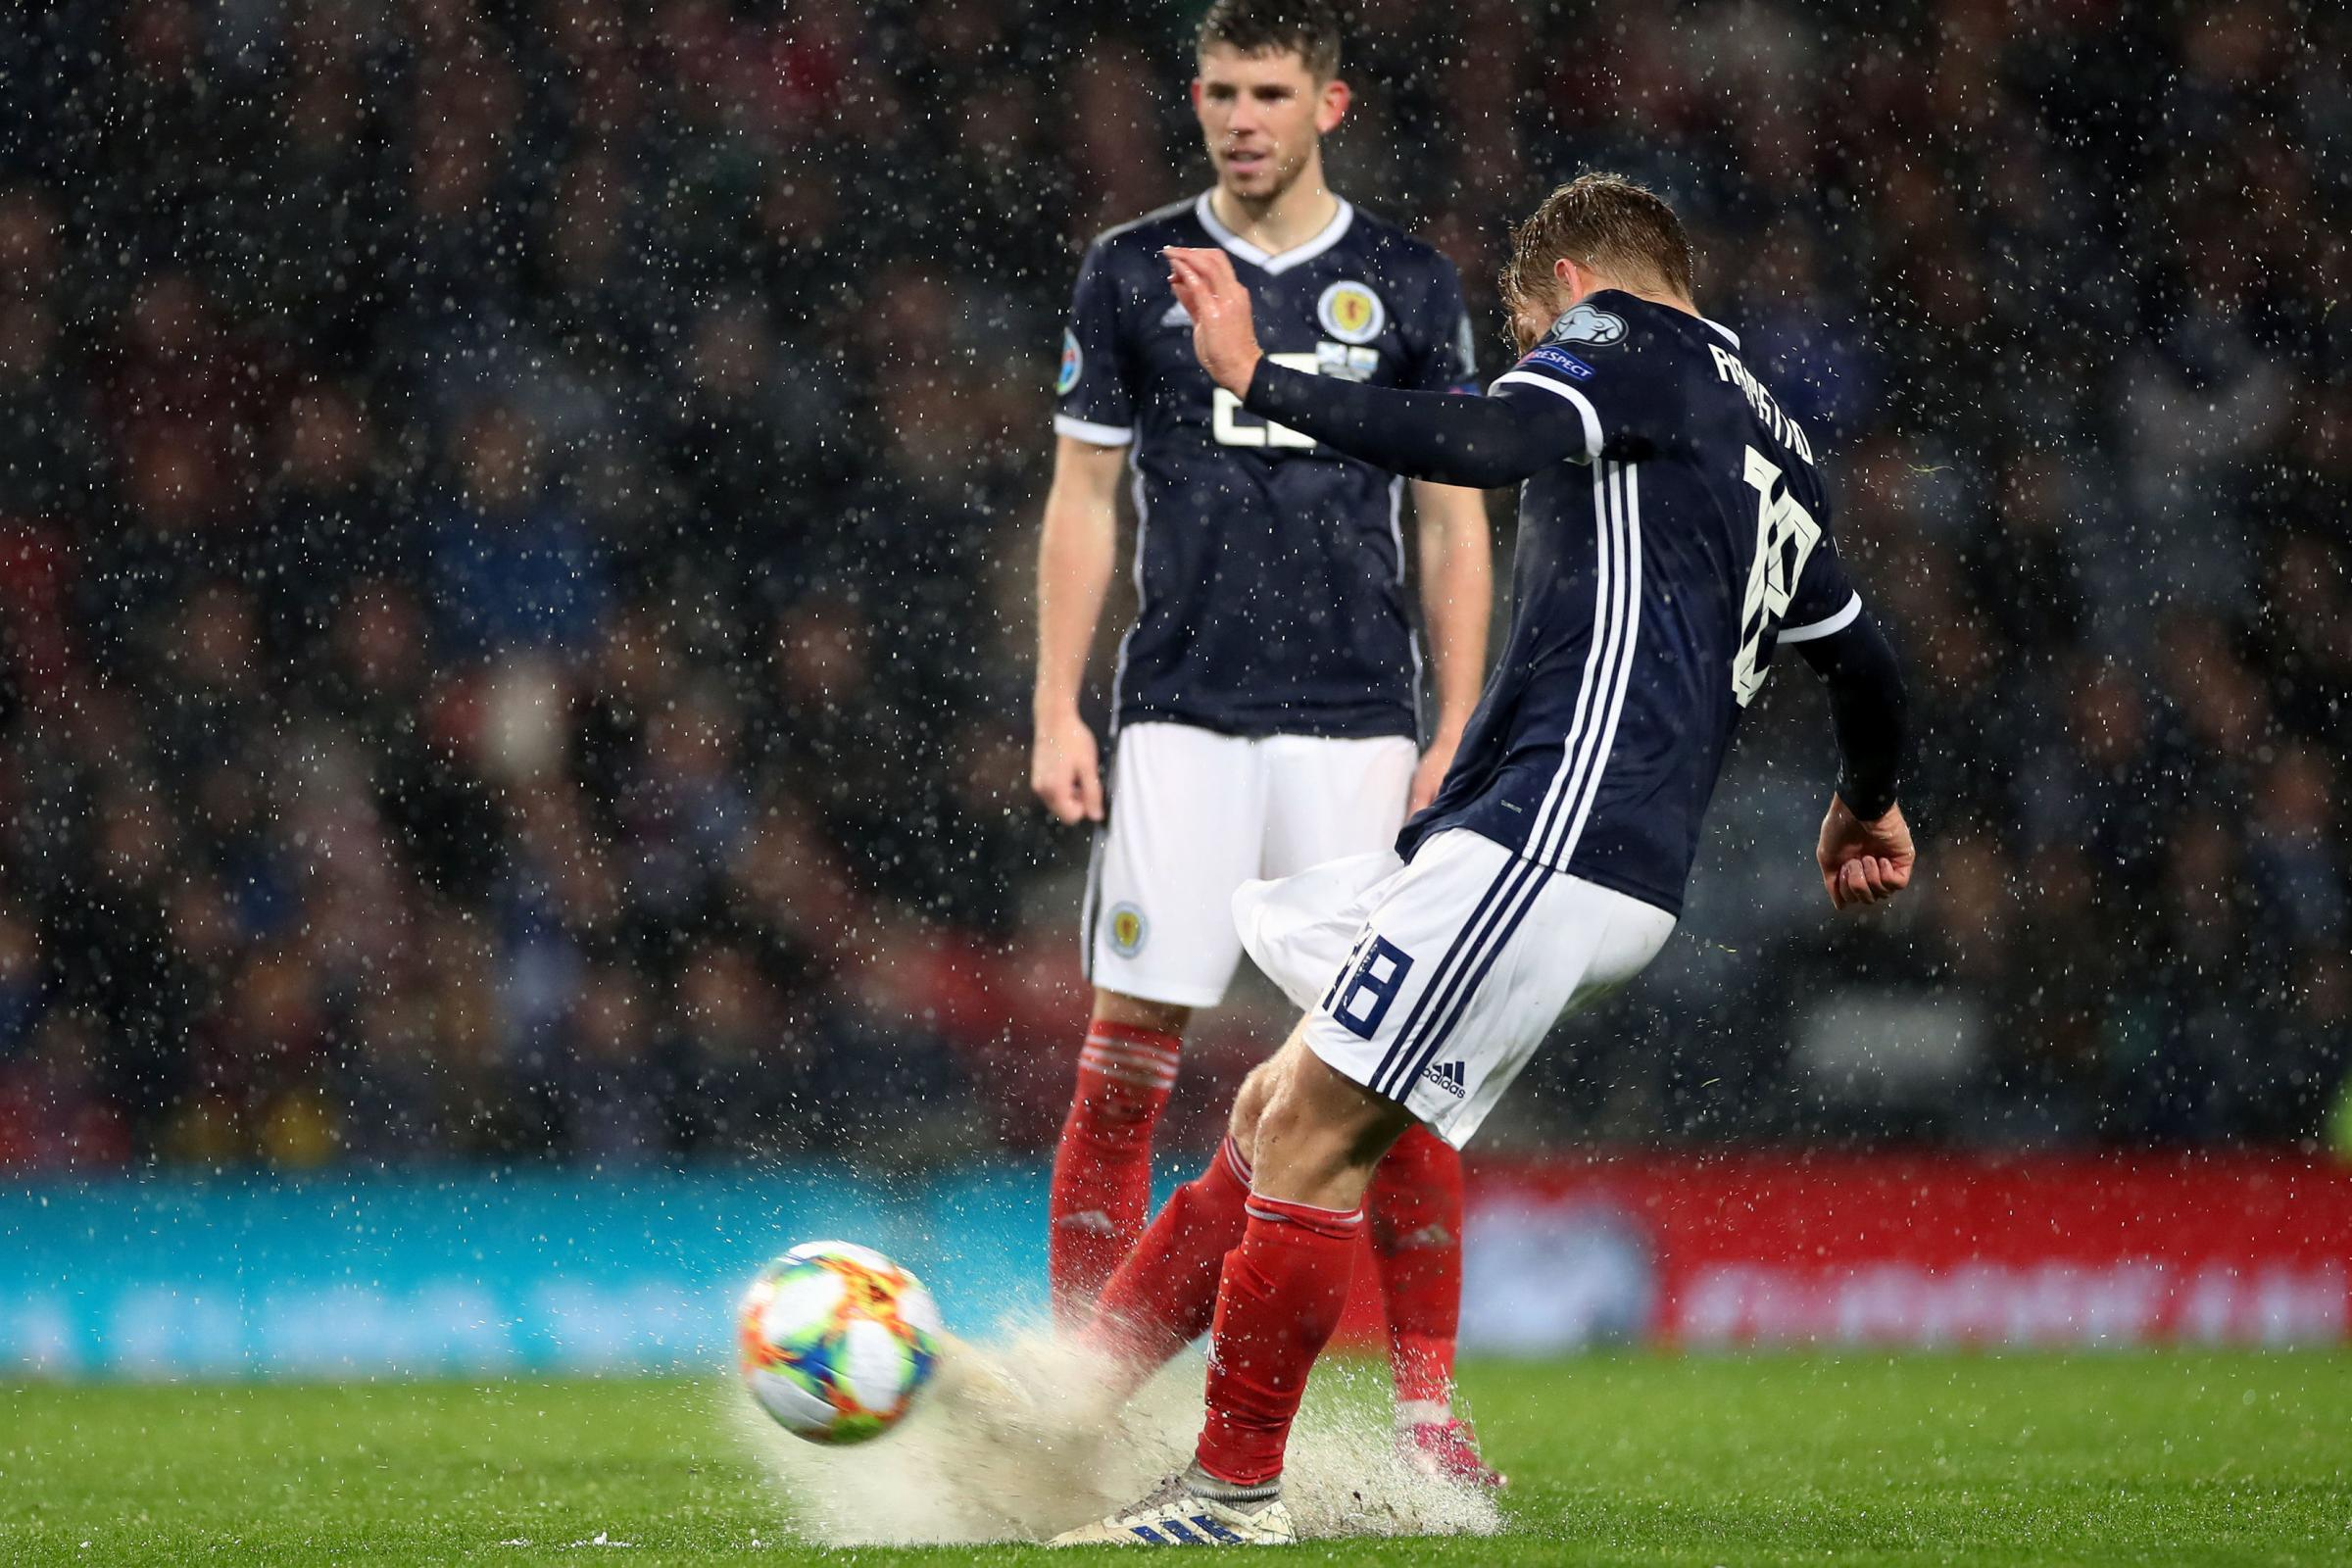 Stuart Armstrong scores for Scotland in Euro 2020 qualifier